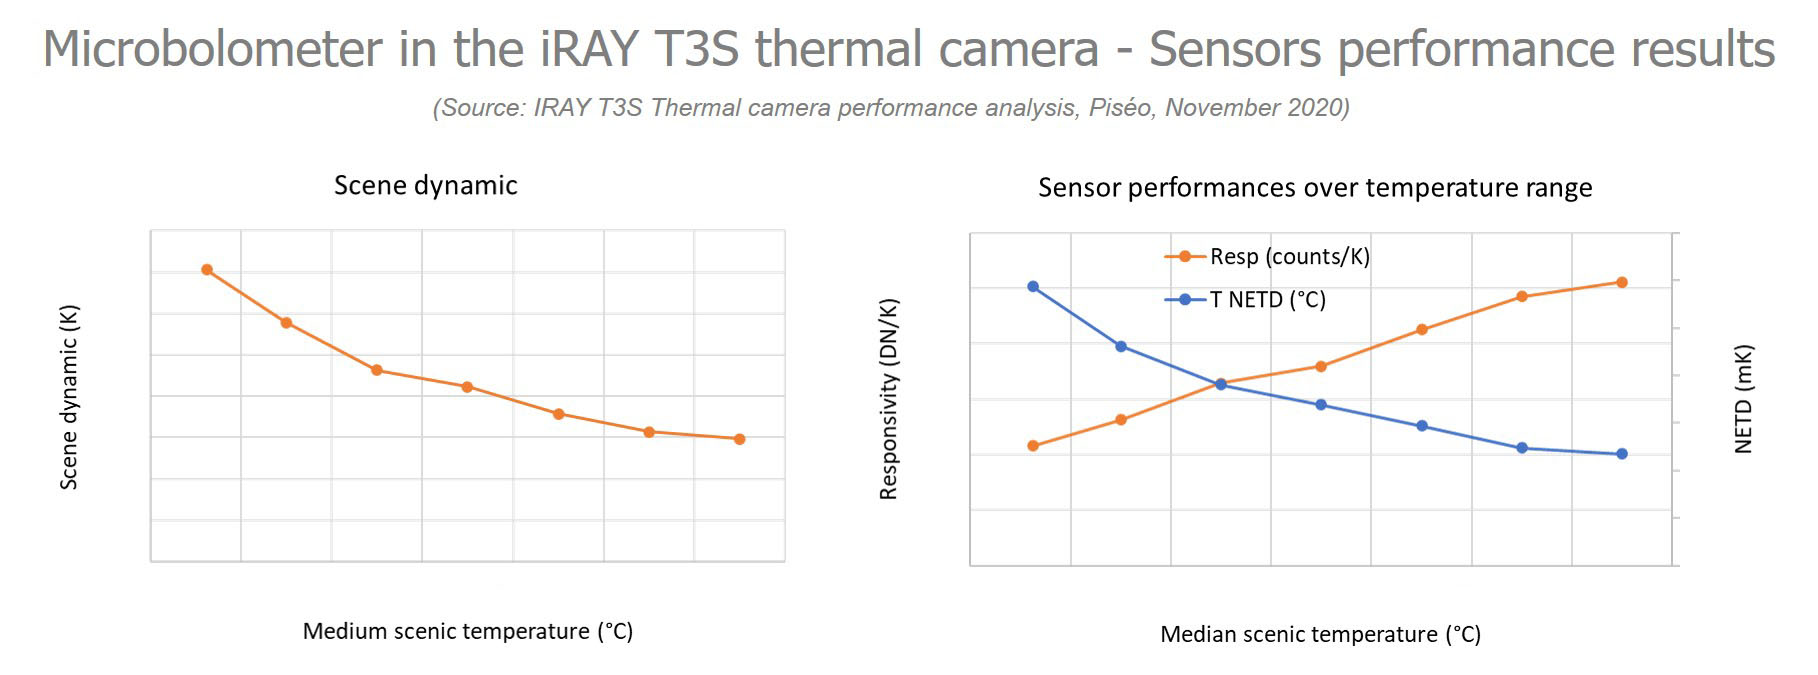 Microbolometer in the iRAY T3S thermal Camera